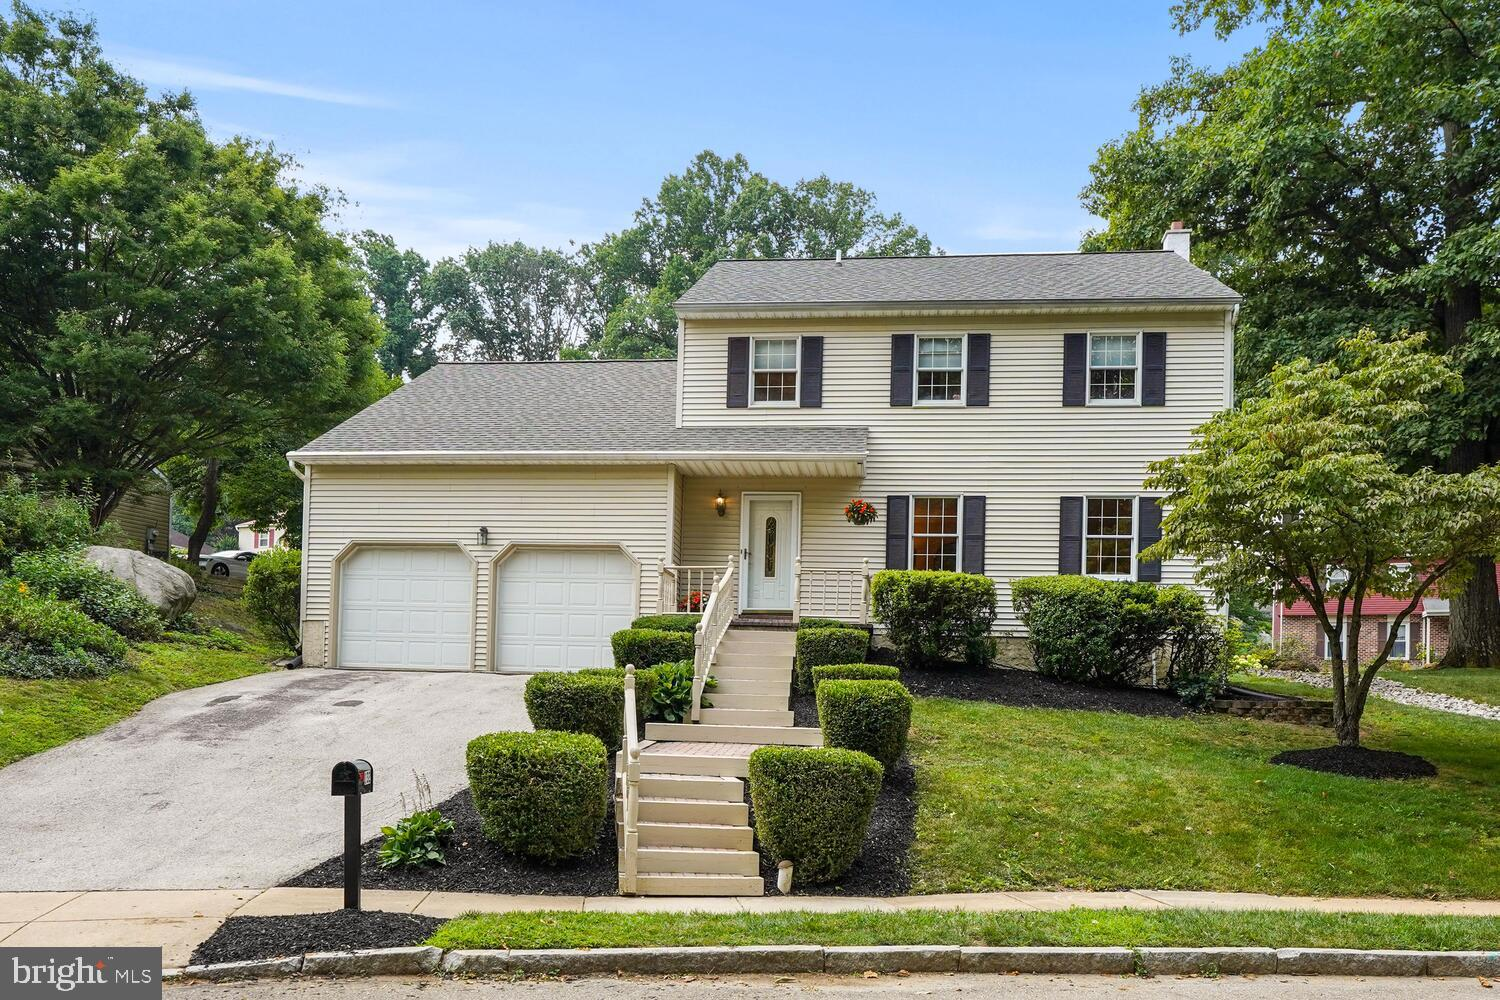 Finally, a spacious and affordable colonial in Radnor township. This sun drenched home  has a spacious living room that leads to a dining room, making a perfect space to entertain. The eat-in kitchen with Kraftmaid cabinets, granite countertops and stainless appliances leads into a newly carpeted, fireside family room. There is a full finished basement which can be additional play space or man cave. The second floor has 4 nice-sized bedrooms with 2 full baths. The primary bedroom has a custom closet and full bath. Enjoy spending time outside in this quiet neighborhood from your back patio and yard. There is tons of open space in the common area next door as well as across the street. This home is located in the top rated Radnor Township School District and is a short distance to Wayne Elementary School, parks, the Radnor walking train and convenient shopping.